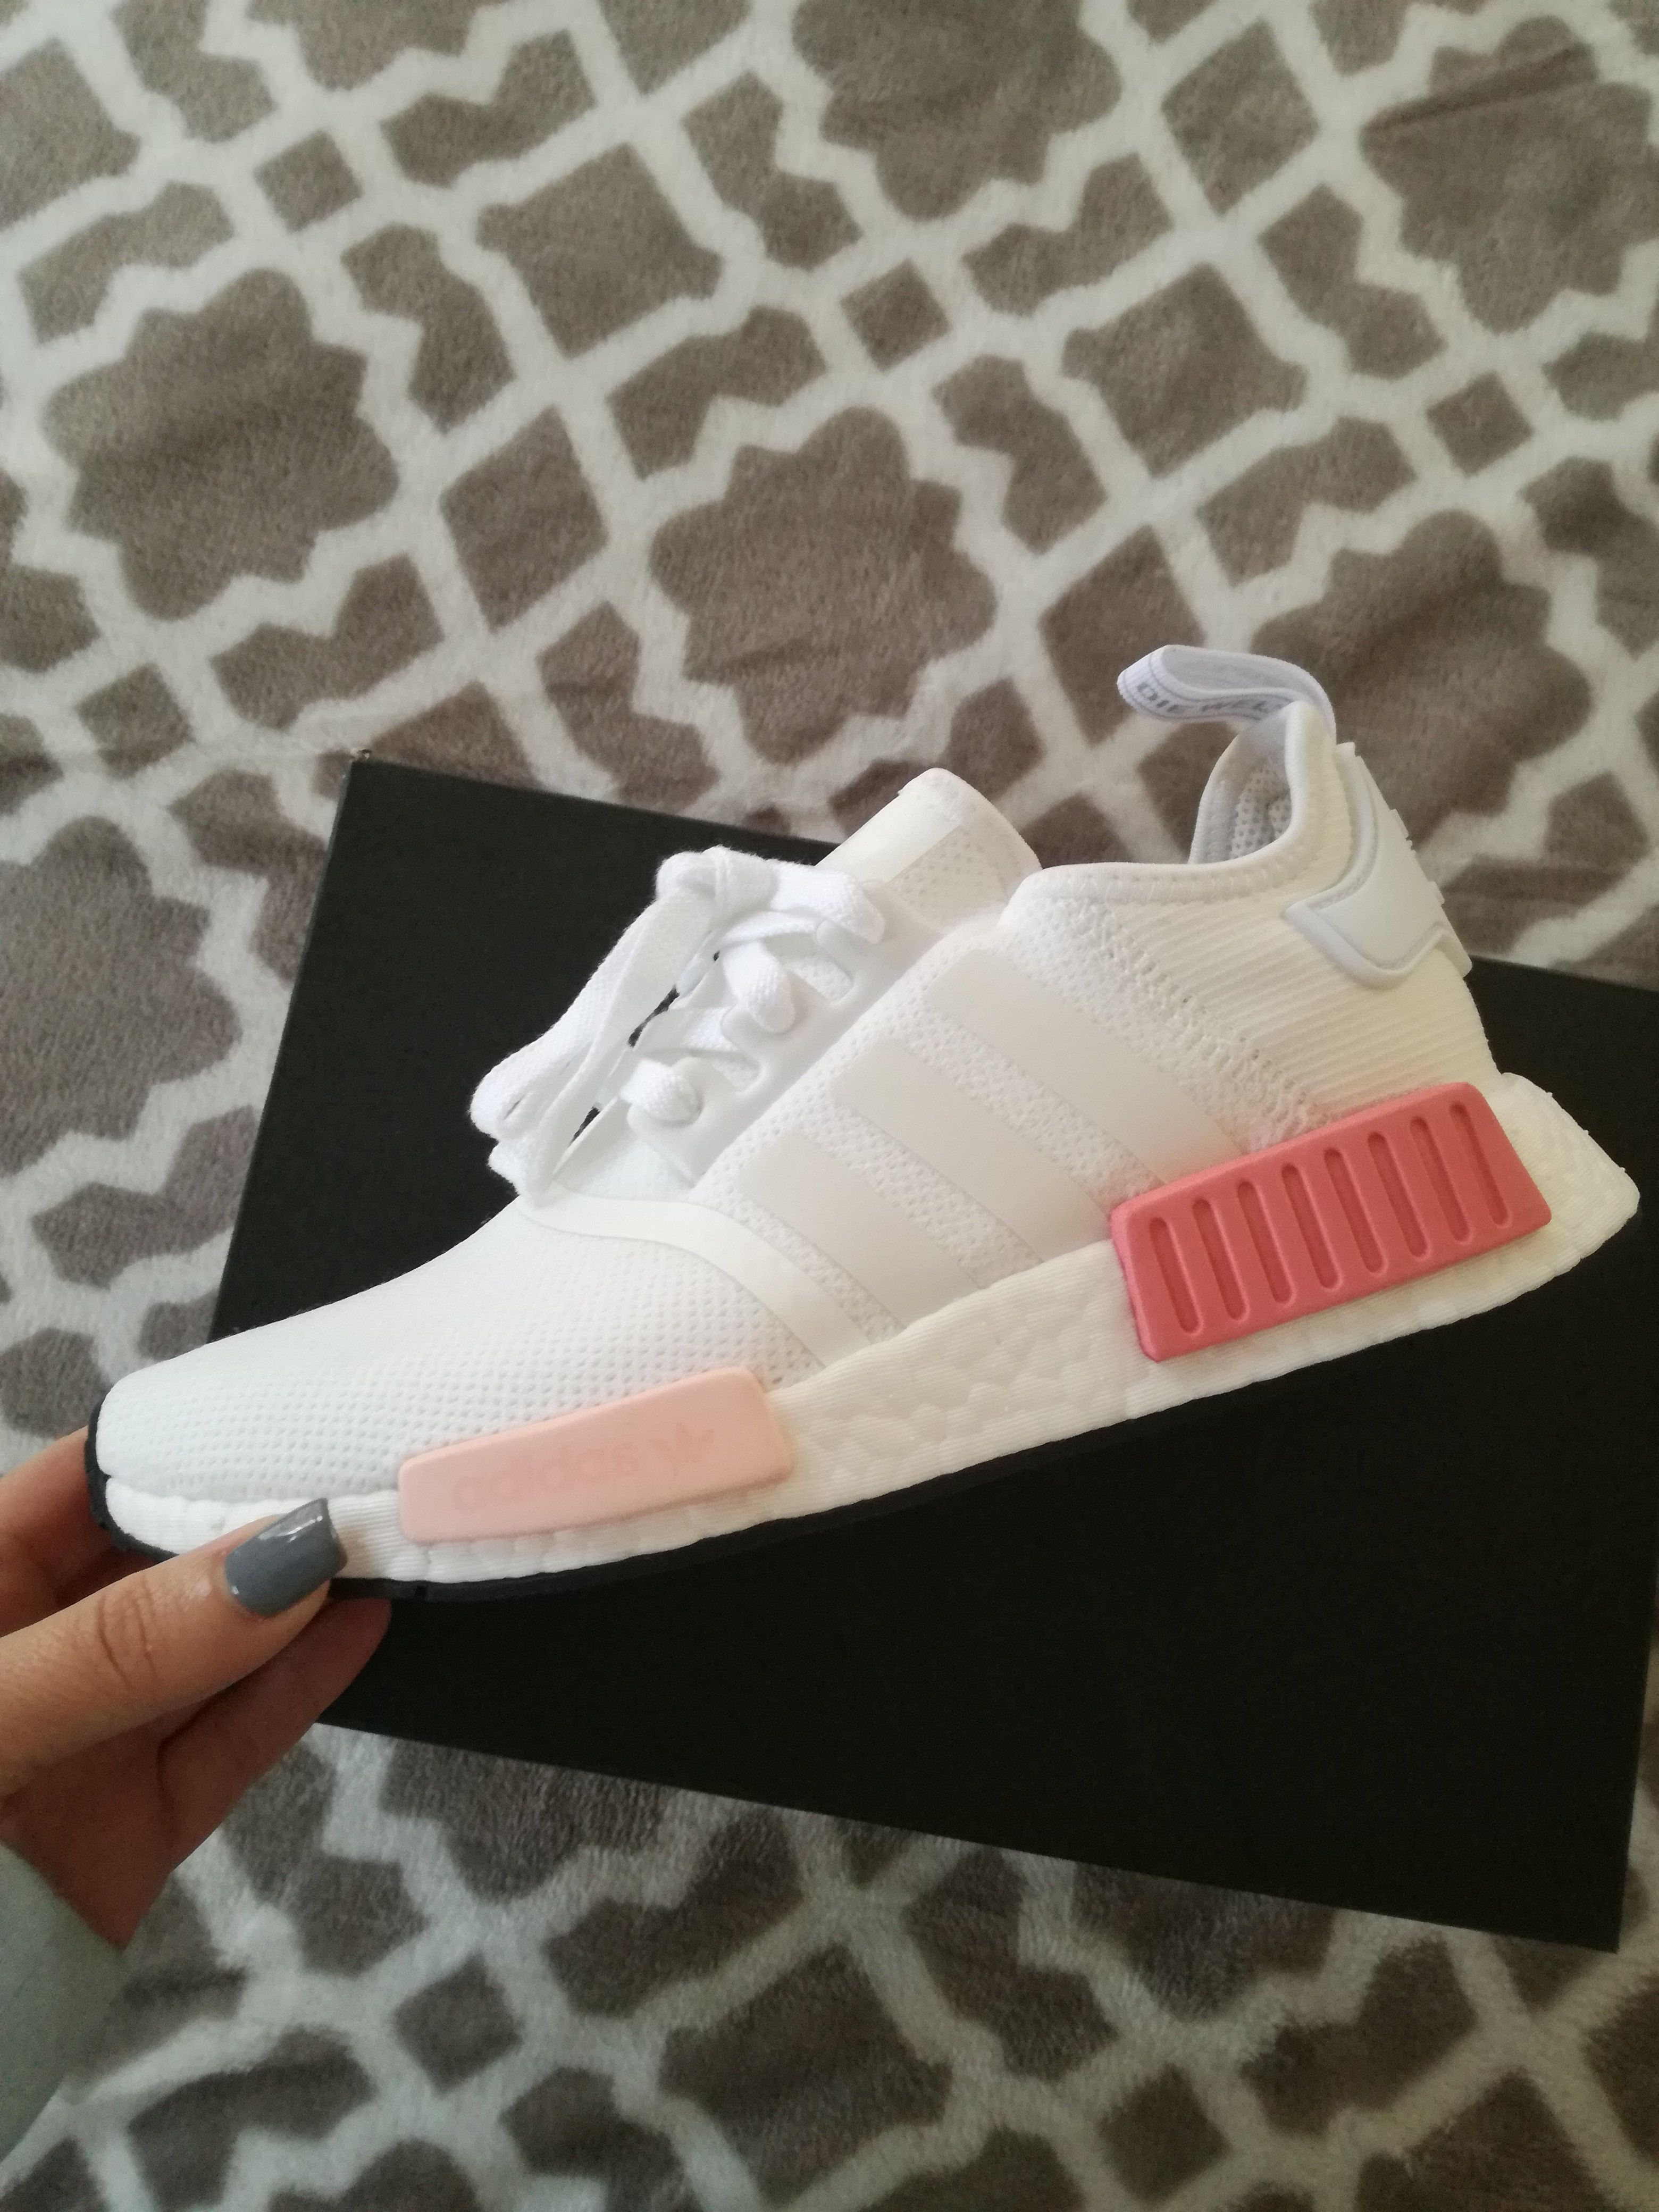 So in love with these Adidas <3